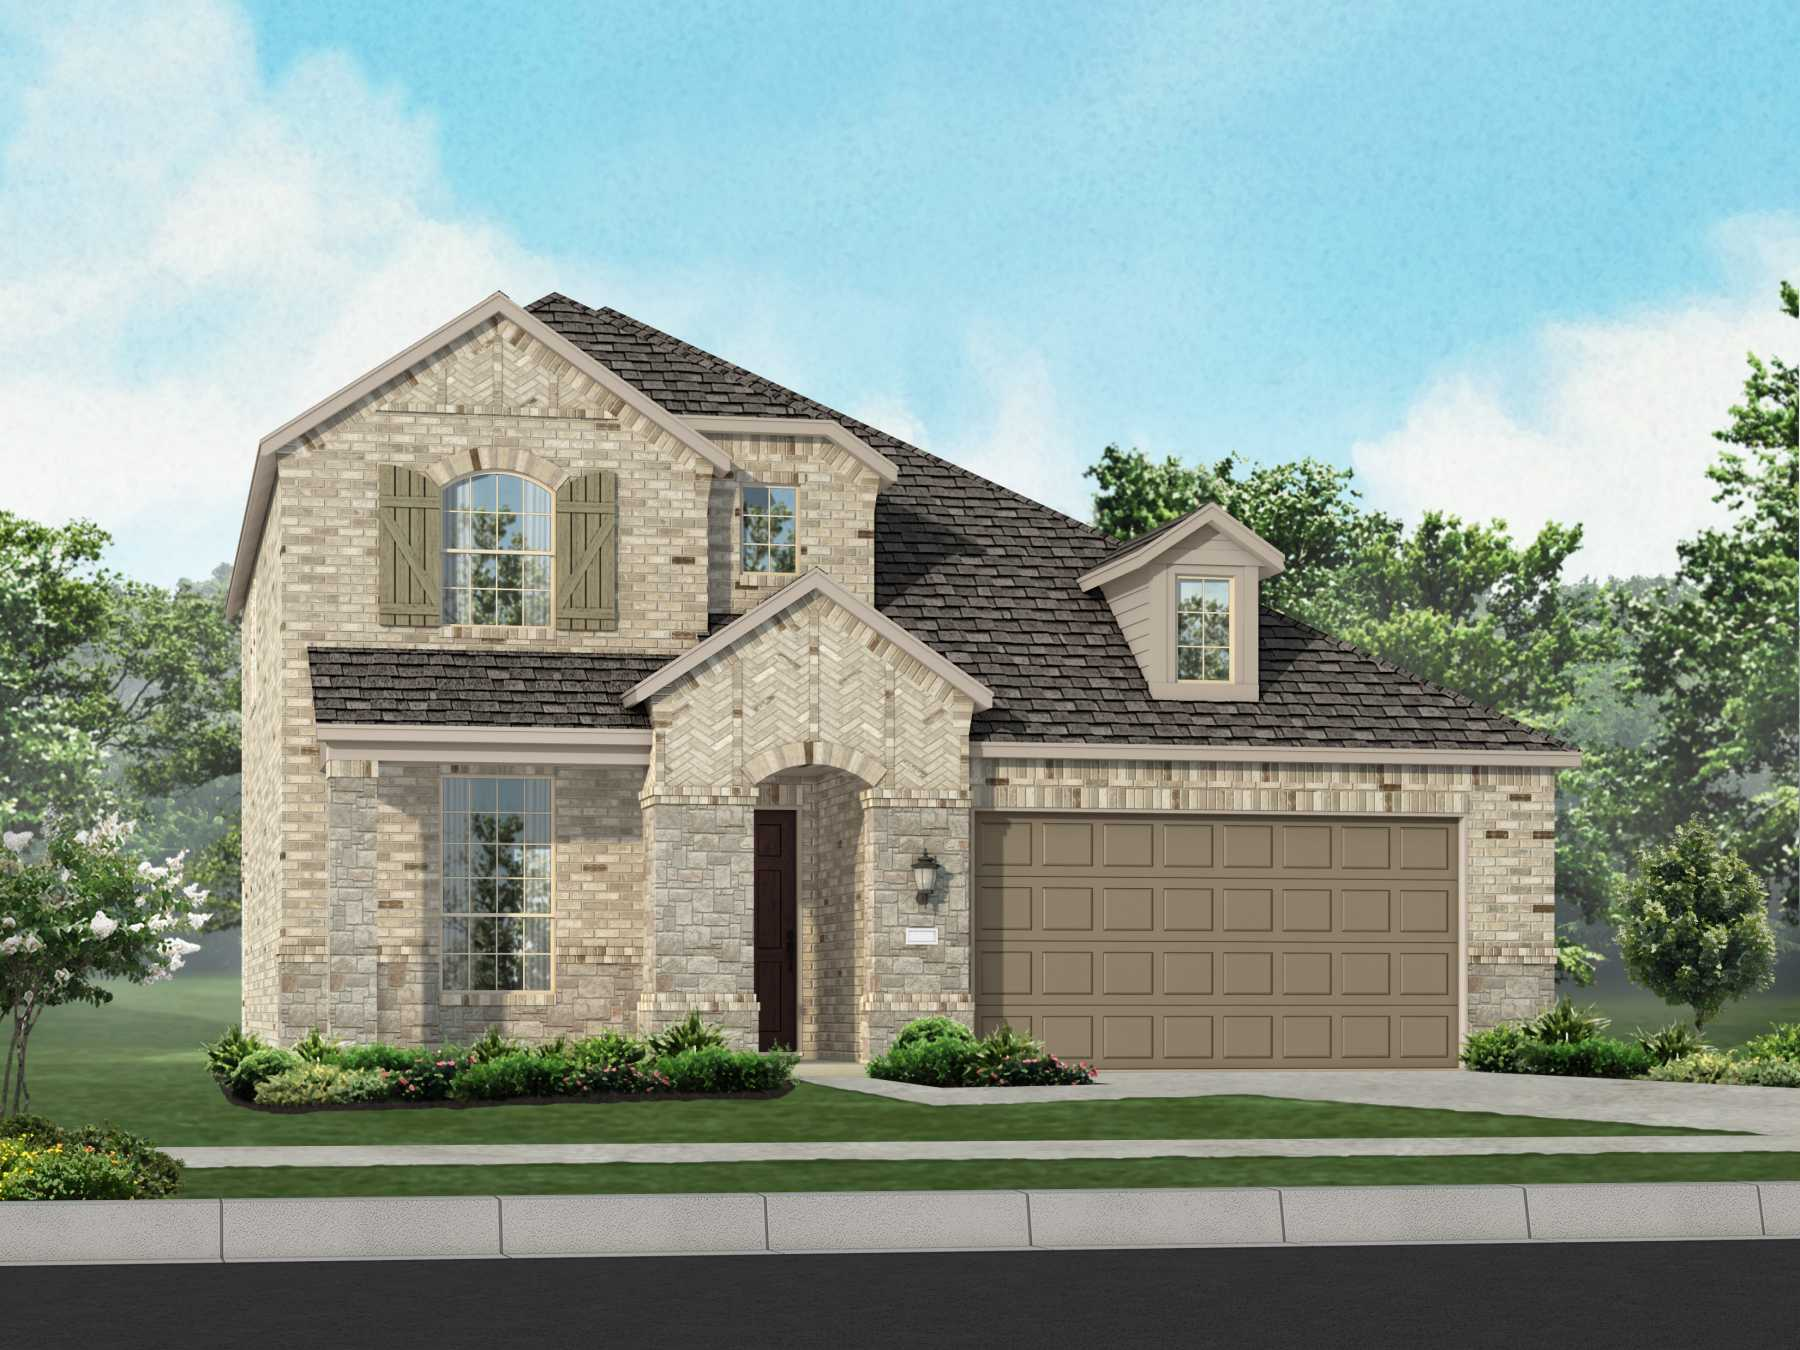 Remarkable New Home Plan Southport In Fulshear Tx 77441 Ibusinesslaw Wood Chair Design Ideas Ibusinesslaworg